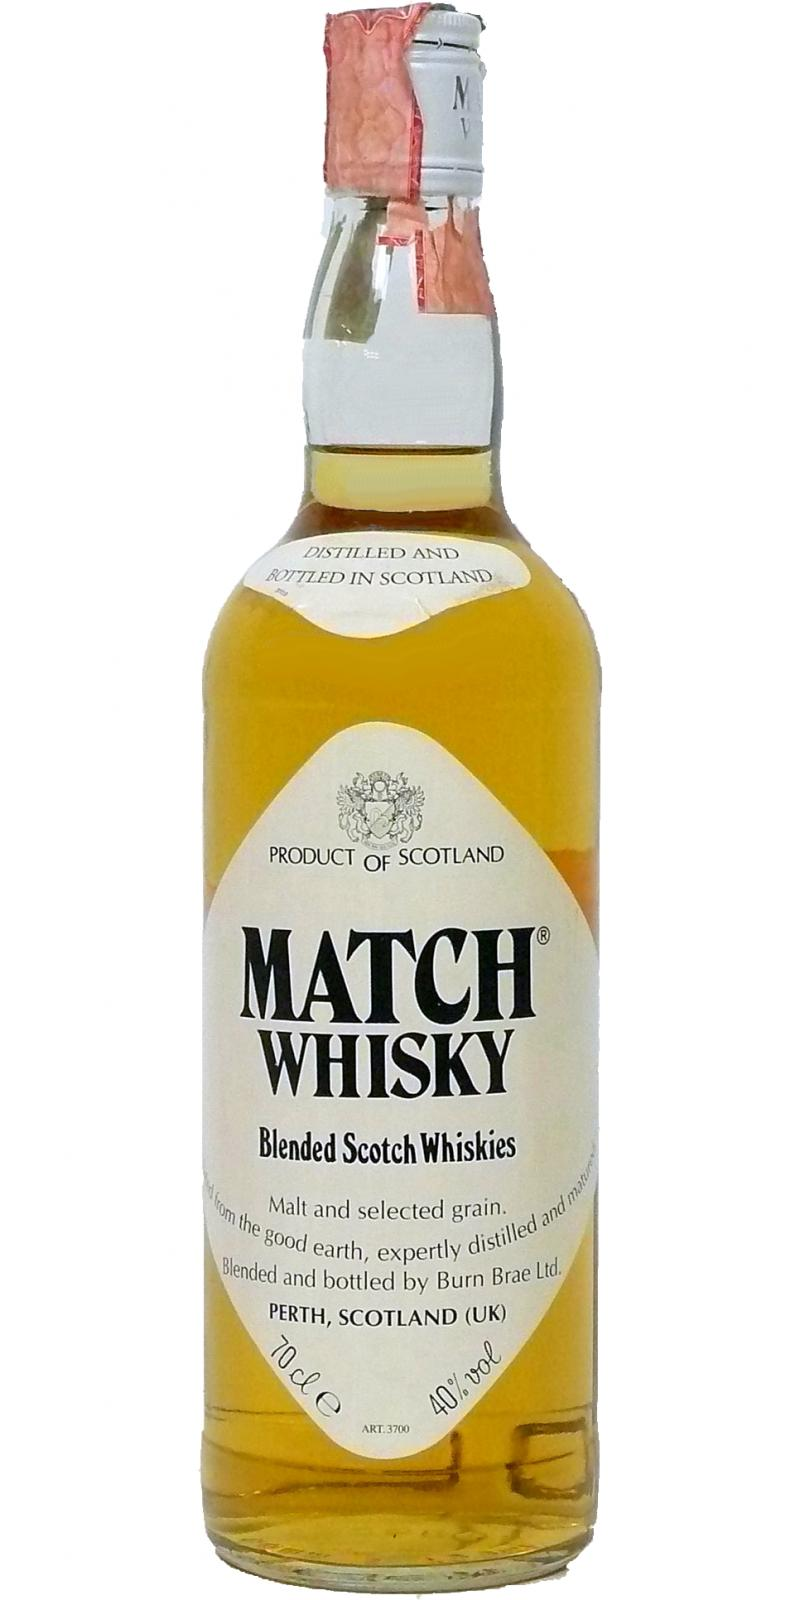 Match Whisky Blended Scotch Whiskies